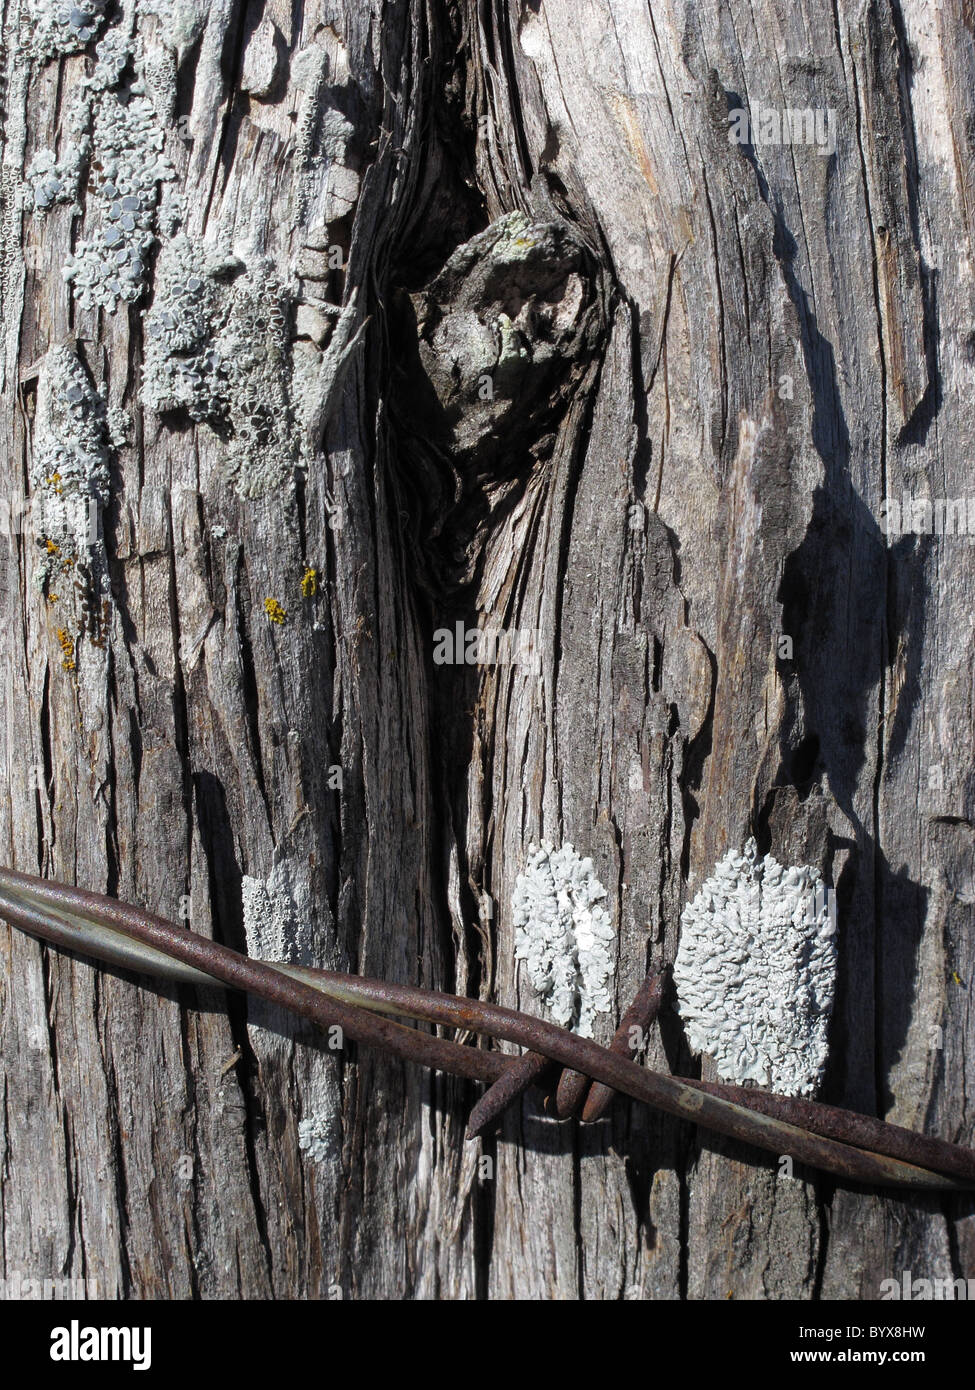 Weathered fence post with barb wire - Stock Image